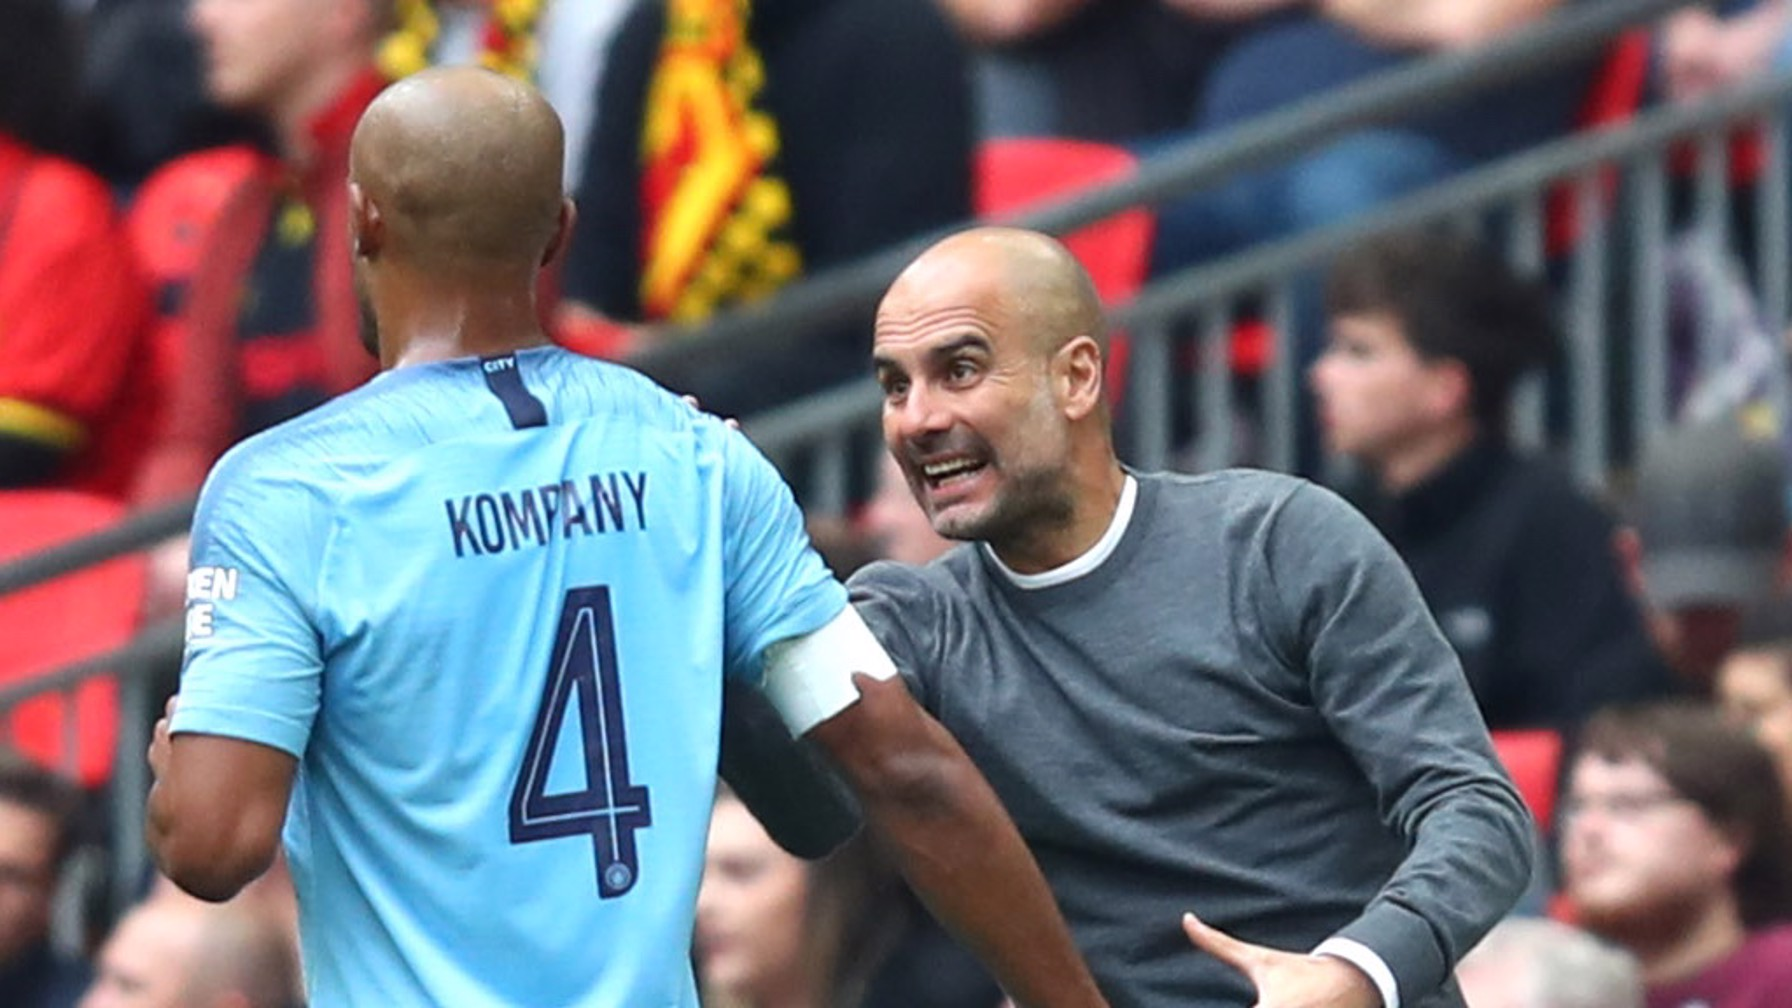 PEP TALK FOR VINNIE: The manager instructs the captain